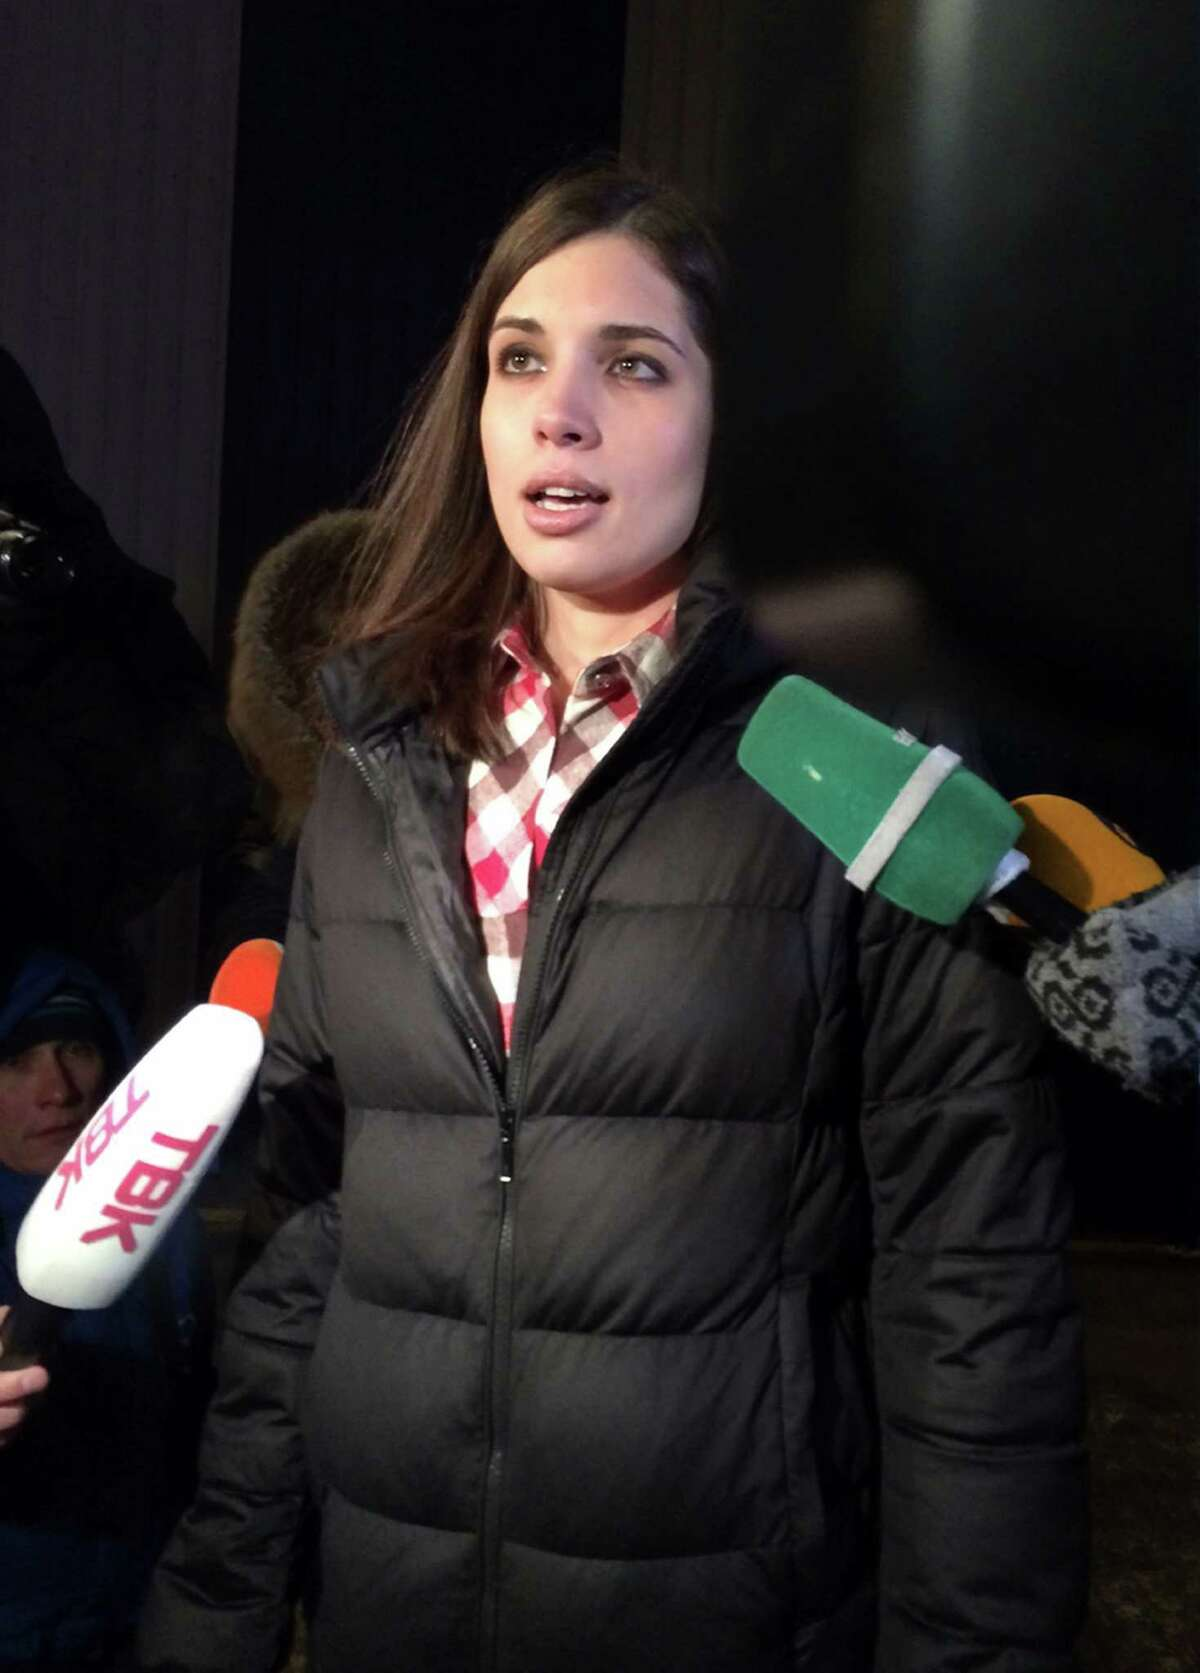 Nadezhda's Tolokonnikova speaks to the media after leaving a prison in Krasnoyarsk, Russia, Monday, Dec. 23, 2013. The third member of the Russian punk bank Pussy Riot has been released from custody following an amnesty law passed by parliament. Tolokonnikova left the prison colony in the eastern Siberian city Krasnoyarsk on Monday, hours after another band member, Maria Alekhina, was released in another region. (AP Photo/Alexander Roslyakov) ORG XMIT: XAZ104